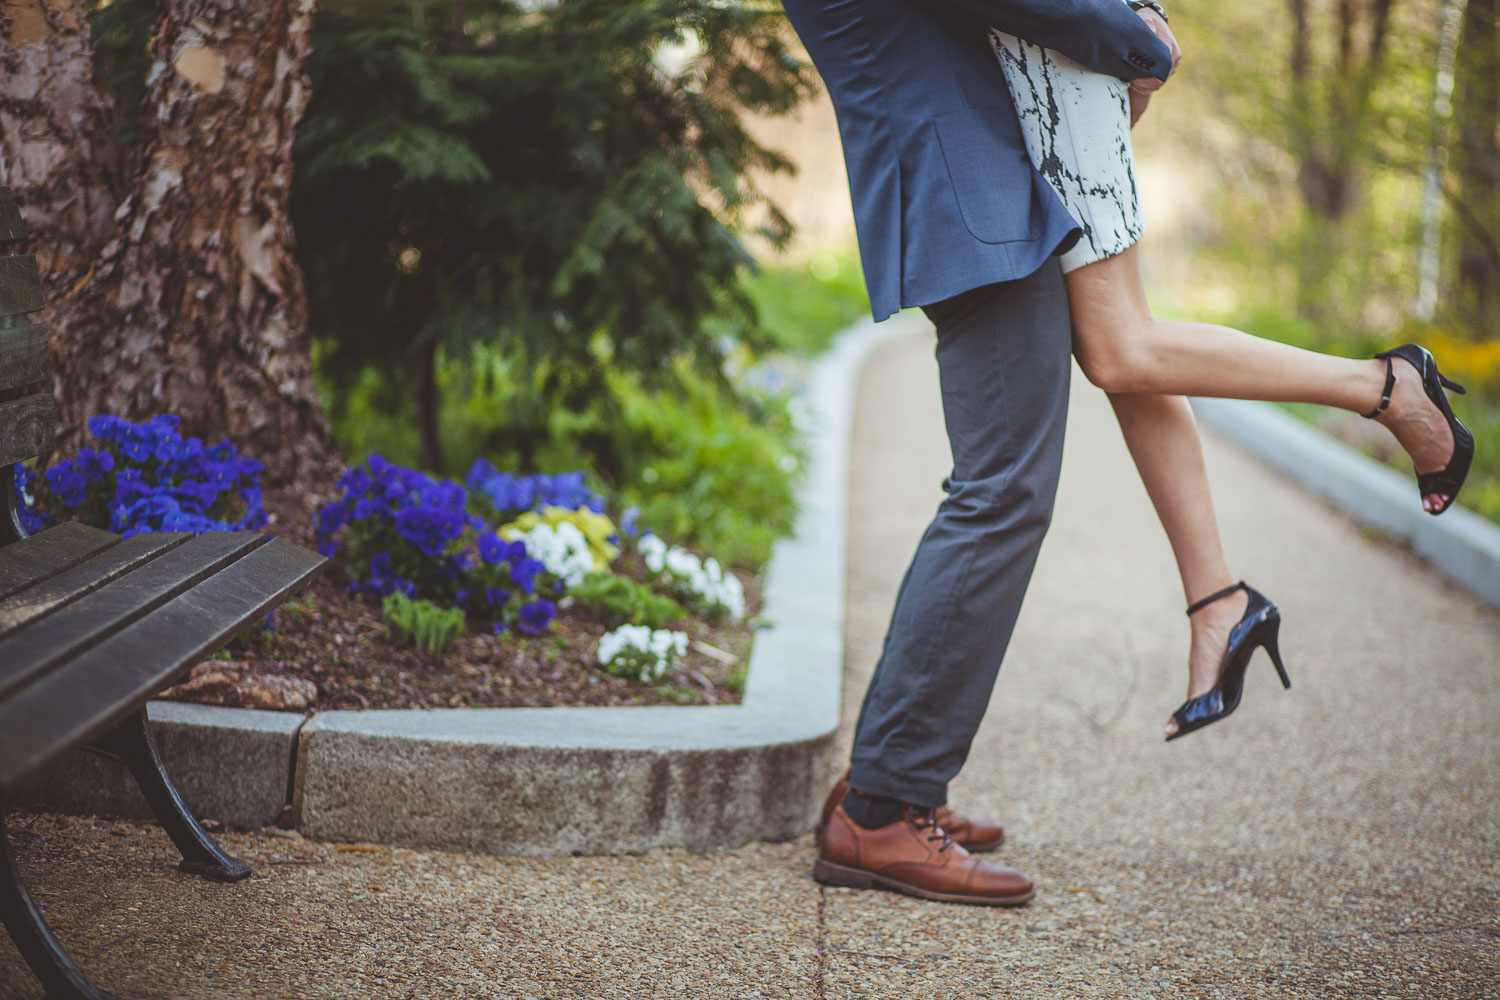 Photo of engaged couple's feet as man lift's his fiancee off the ground.